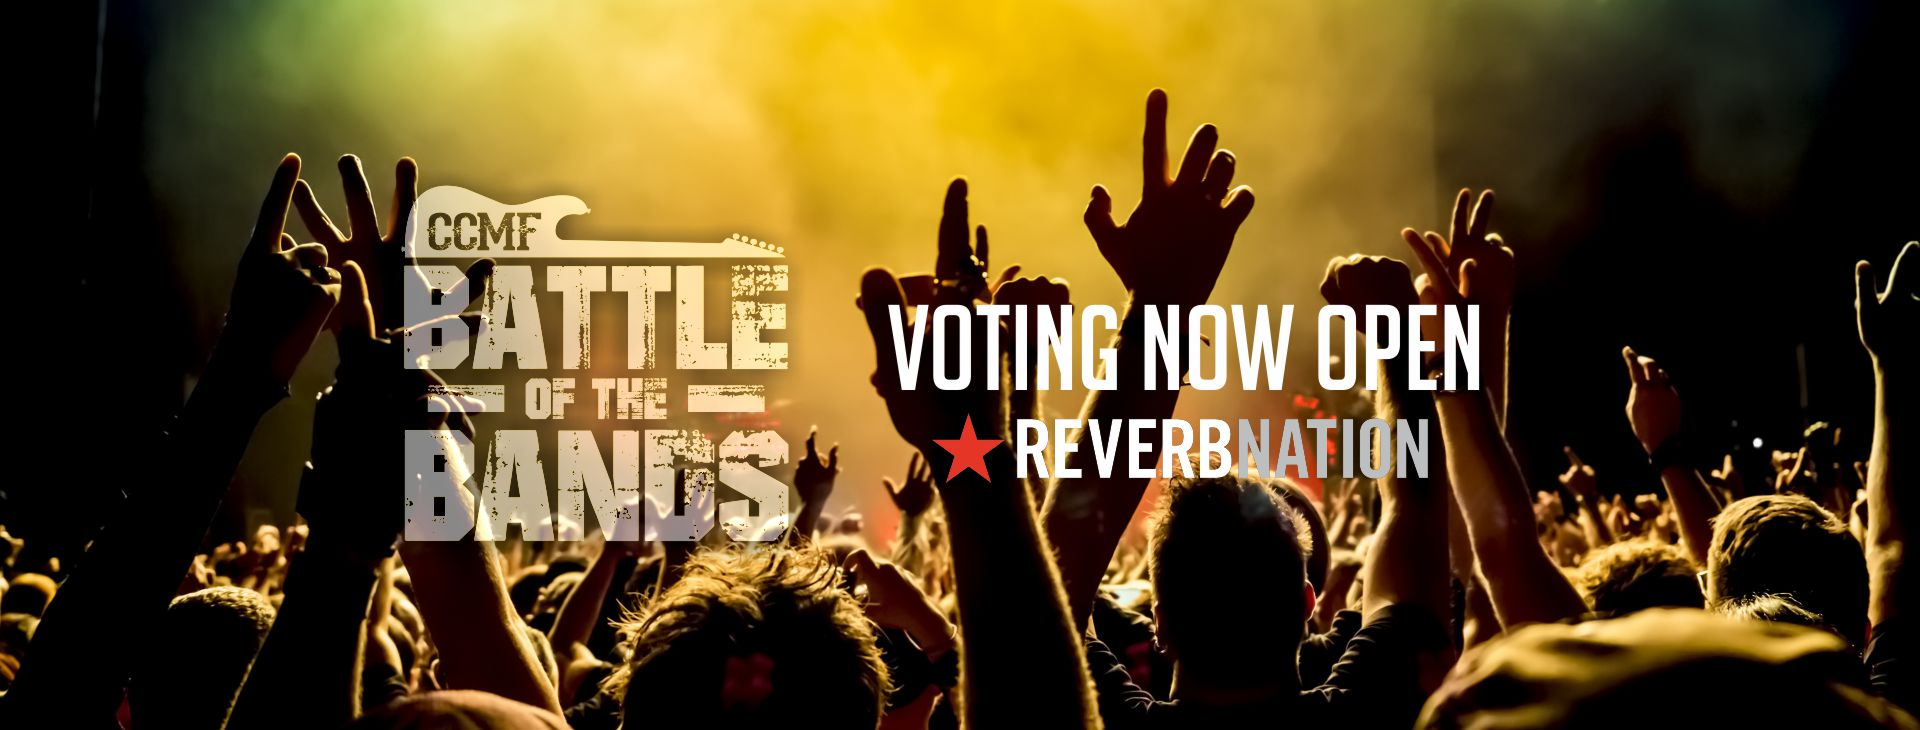 CCMF 2018 Battle of the Bands Voting Has Begun!